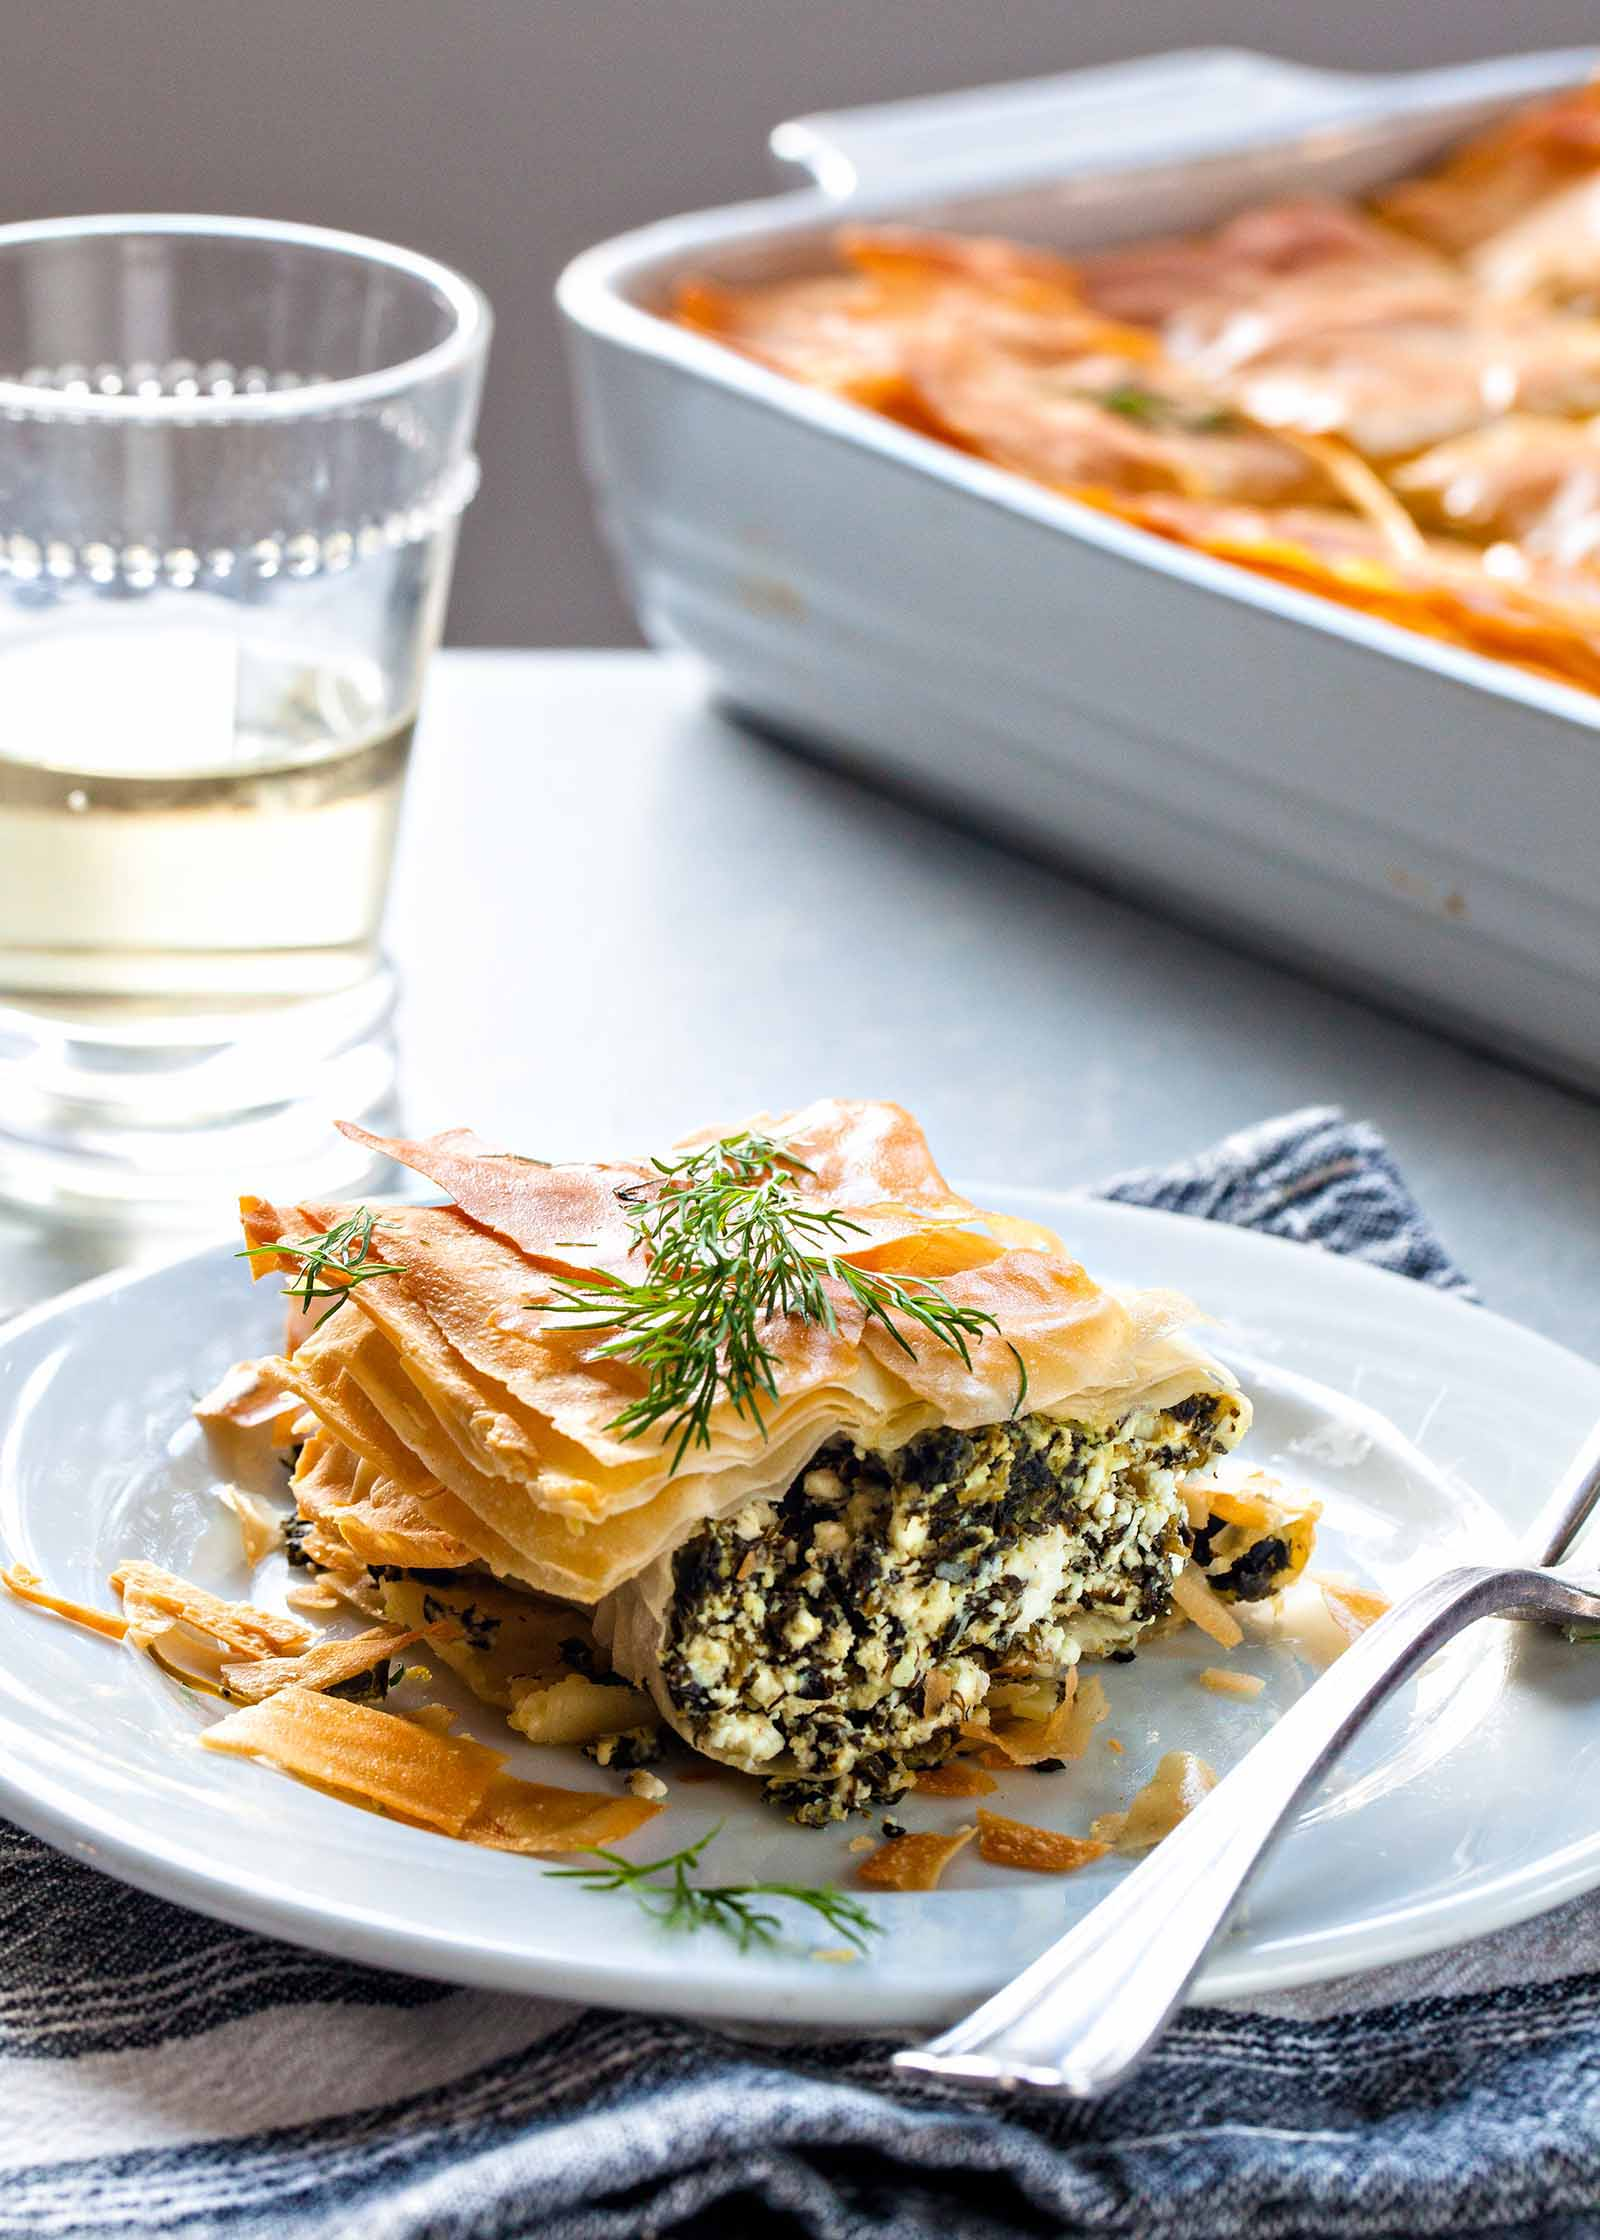 Slice of Greek Spinach Pie on a white plate, with a fork, a glass of white wine, and the casserole dish in the background,